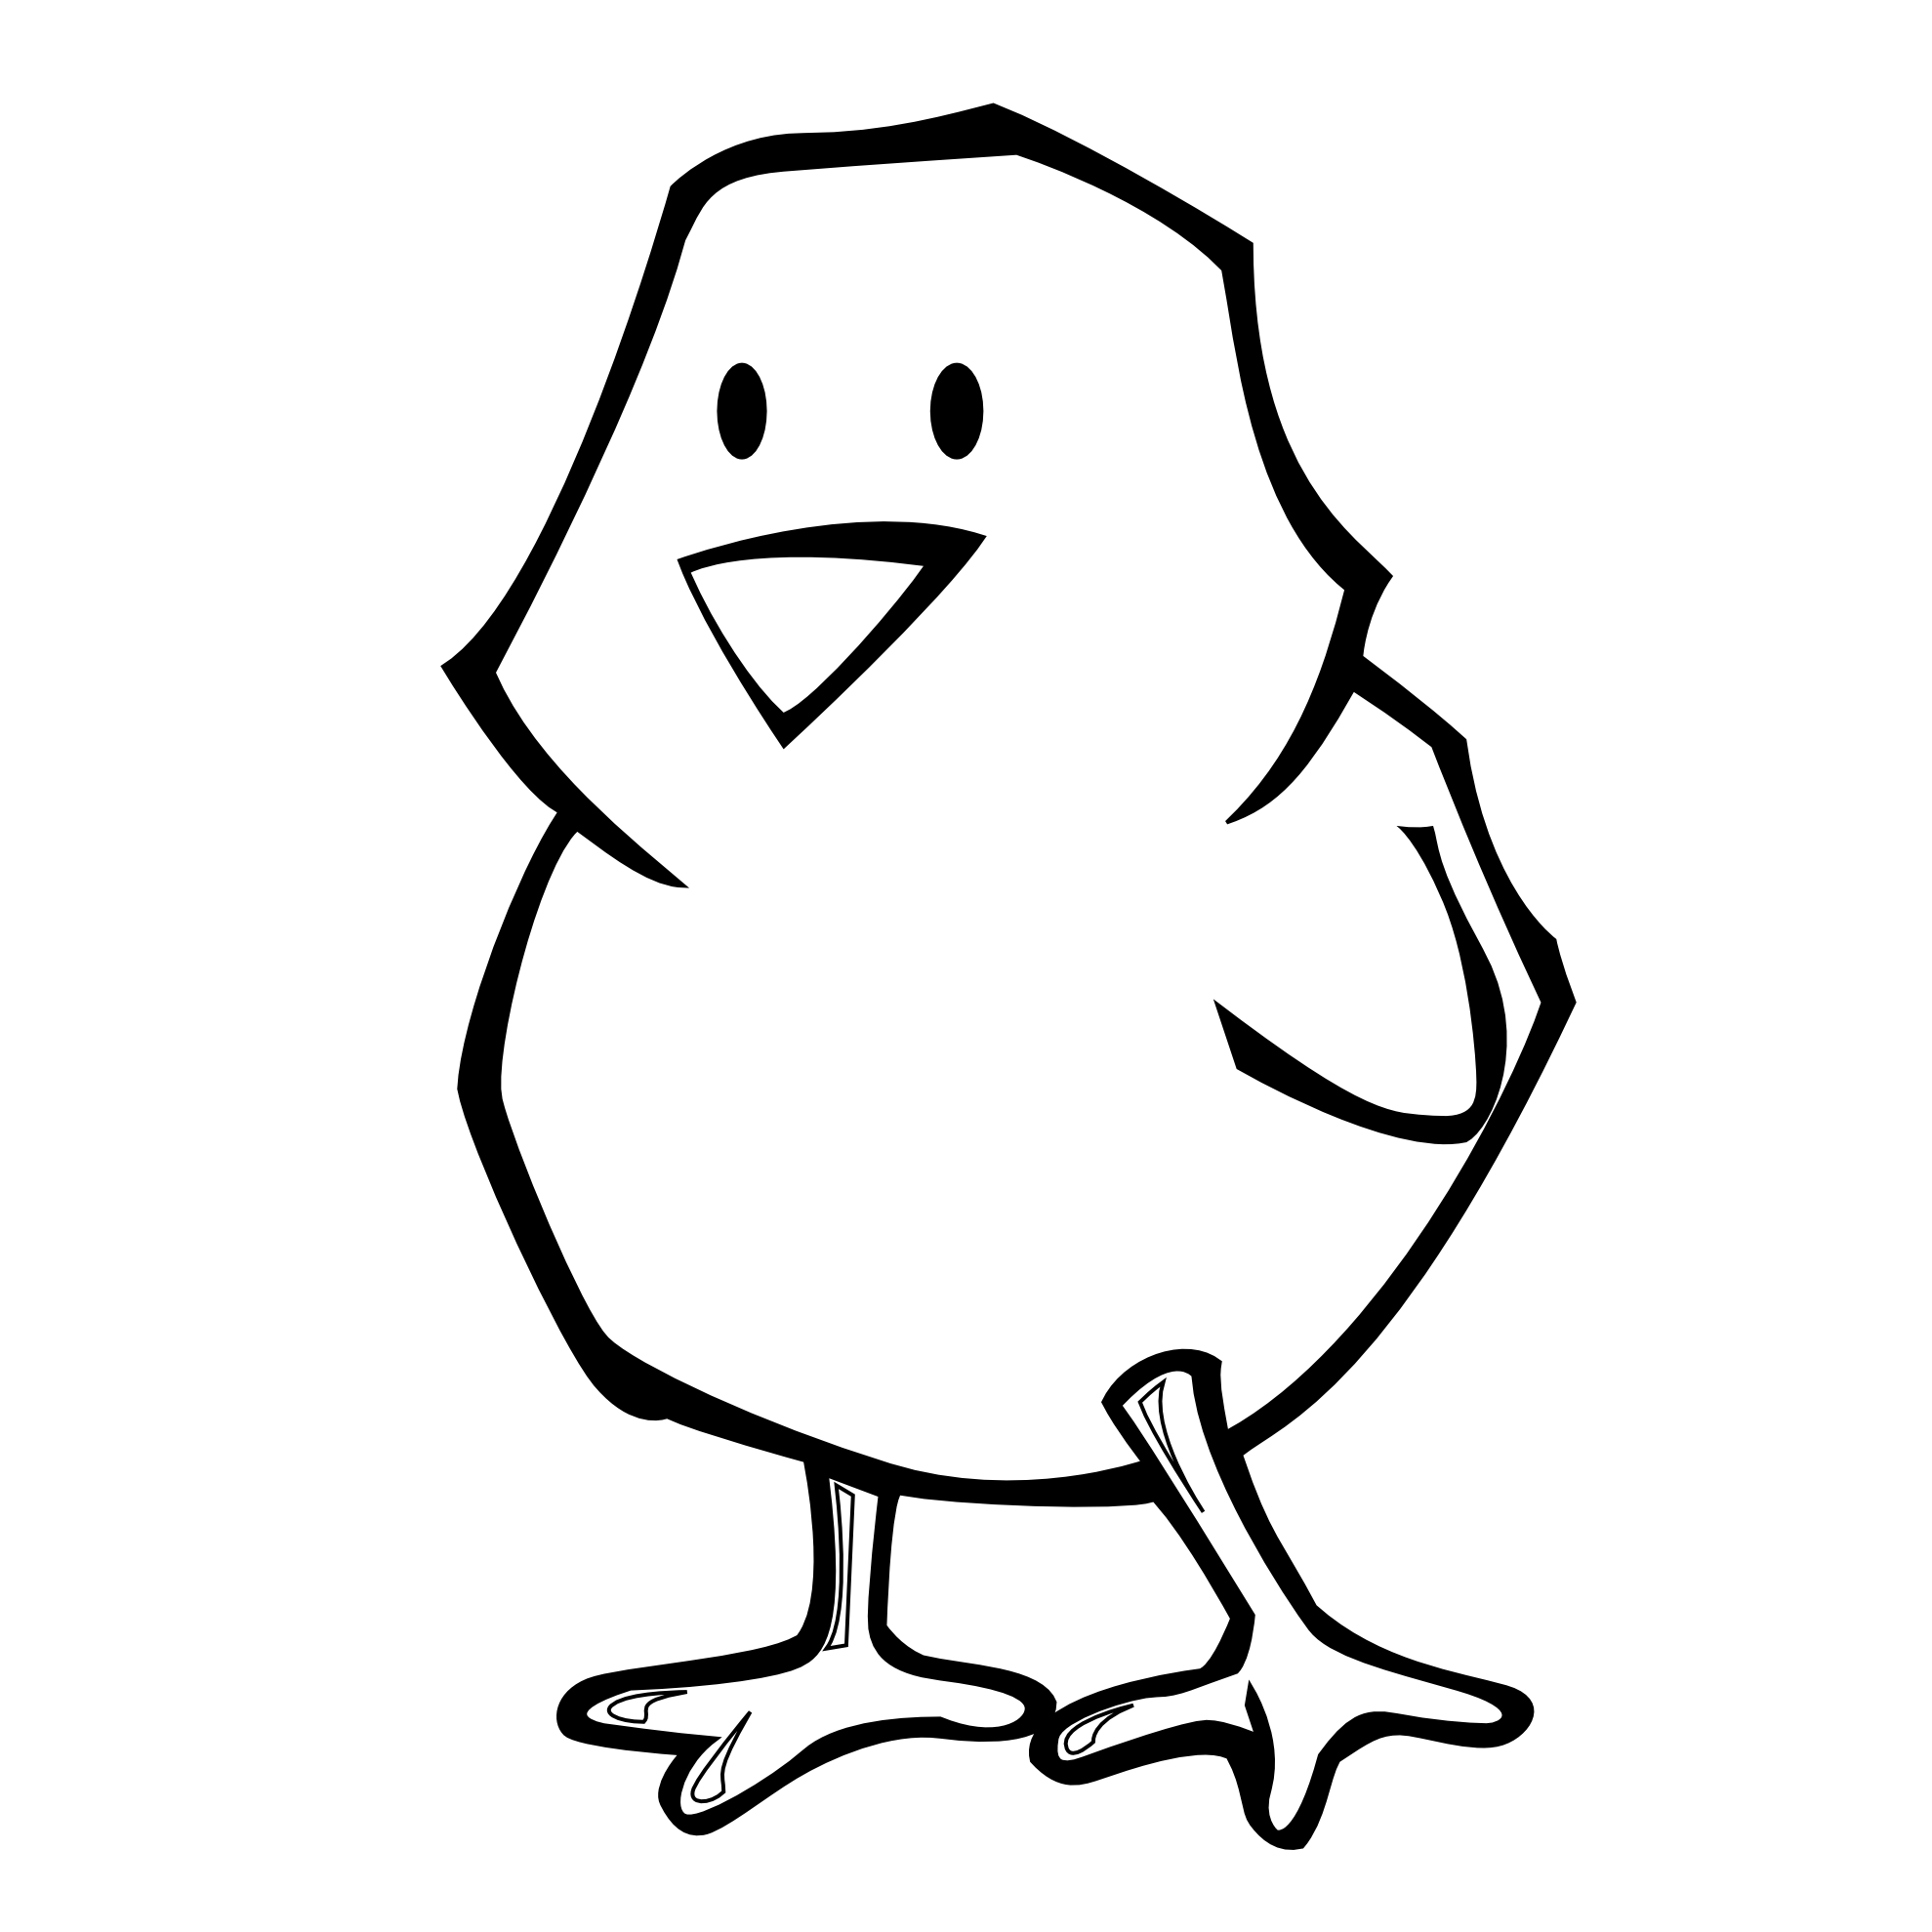 1979x1979 Chick Clipart Black And White